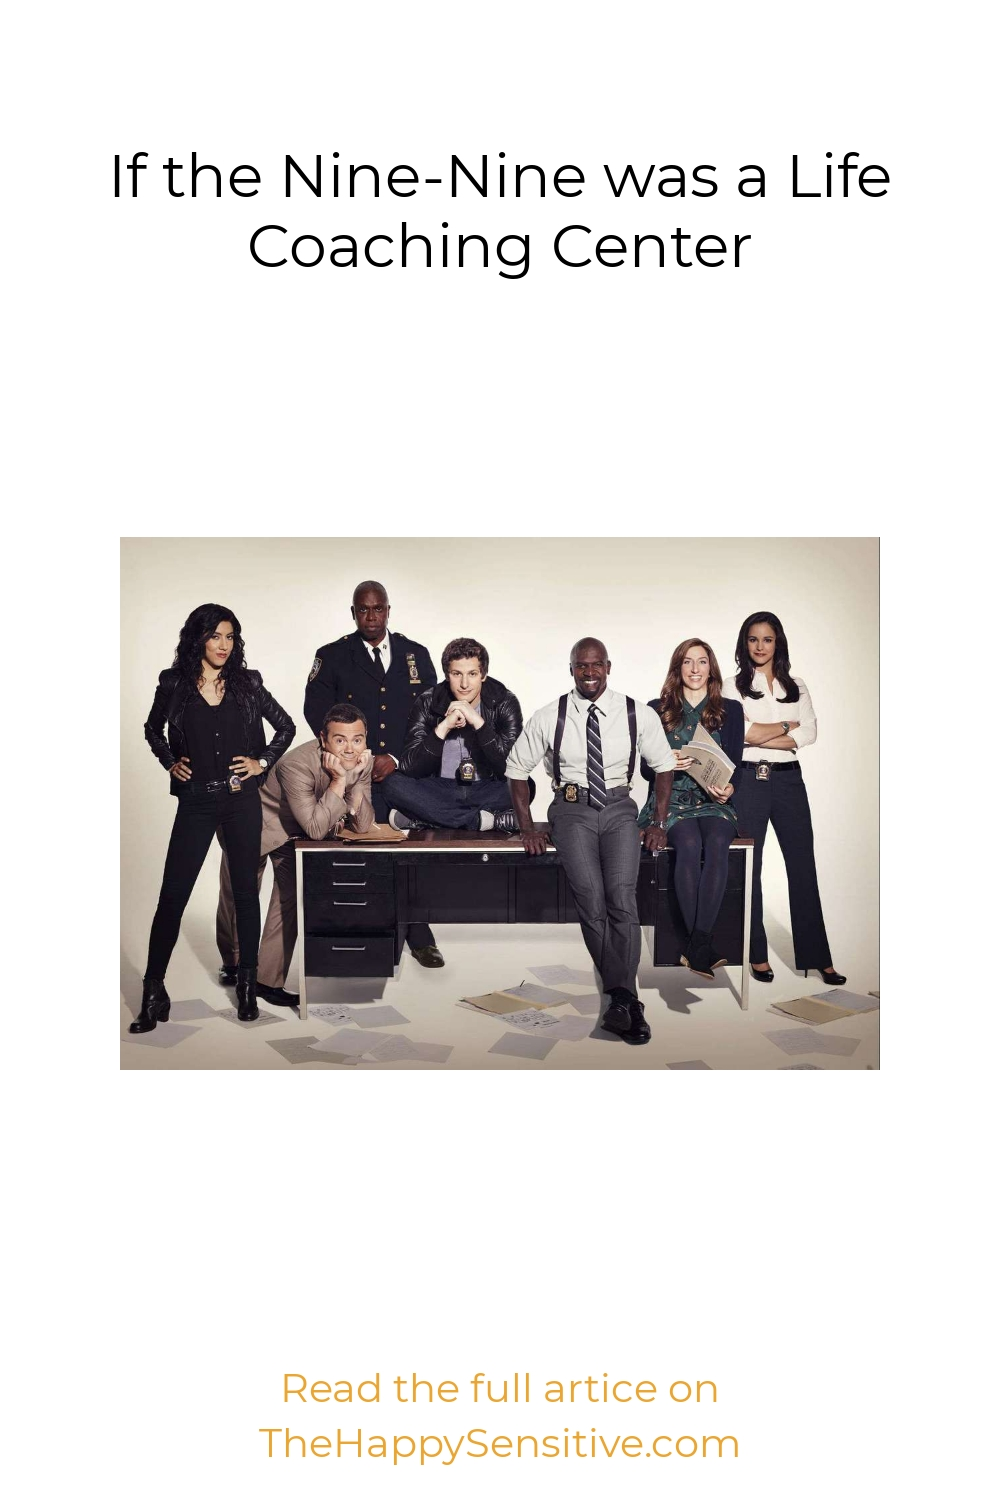 If the Nine-Nine was a Life Coaching Center